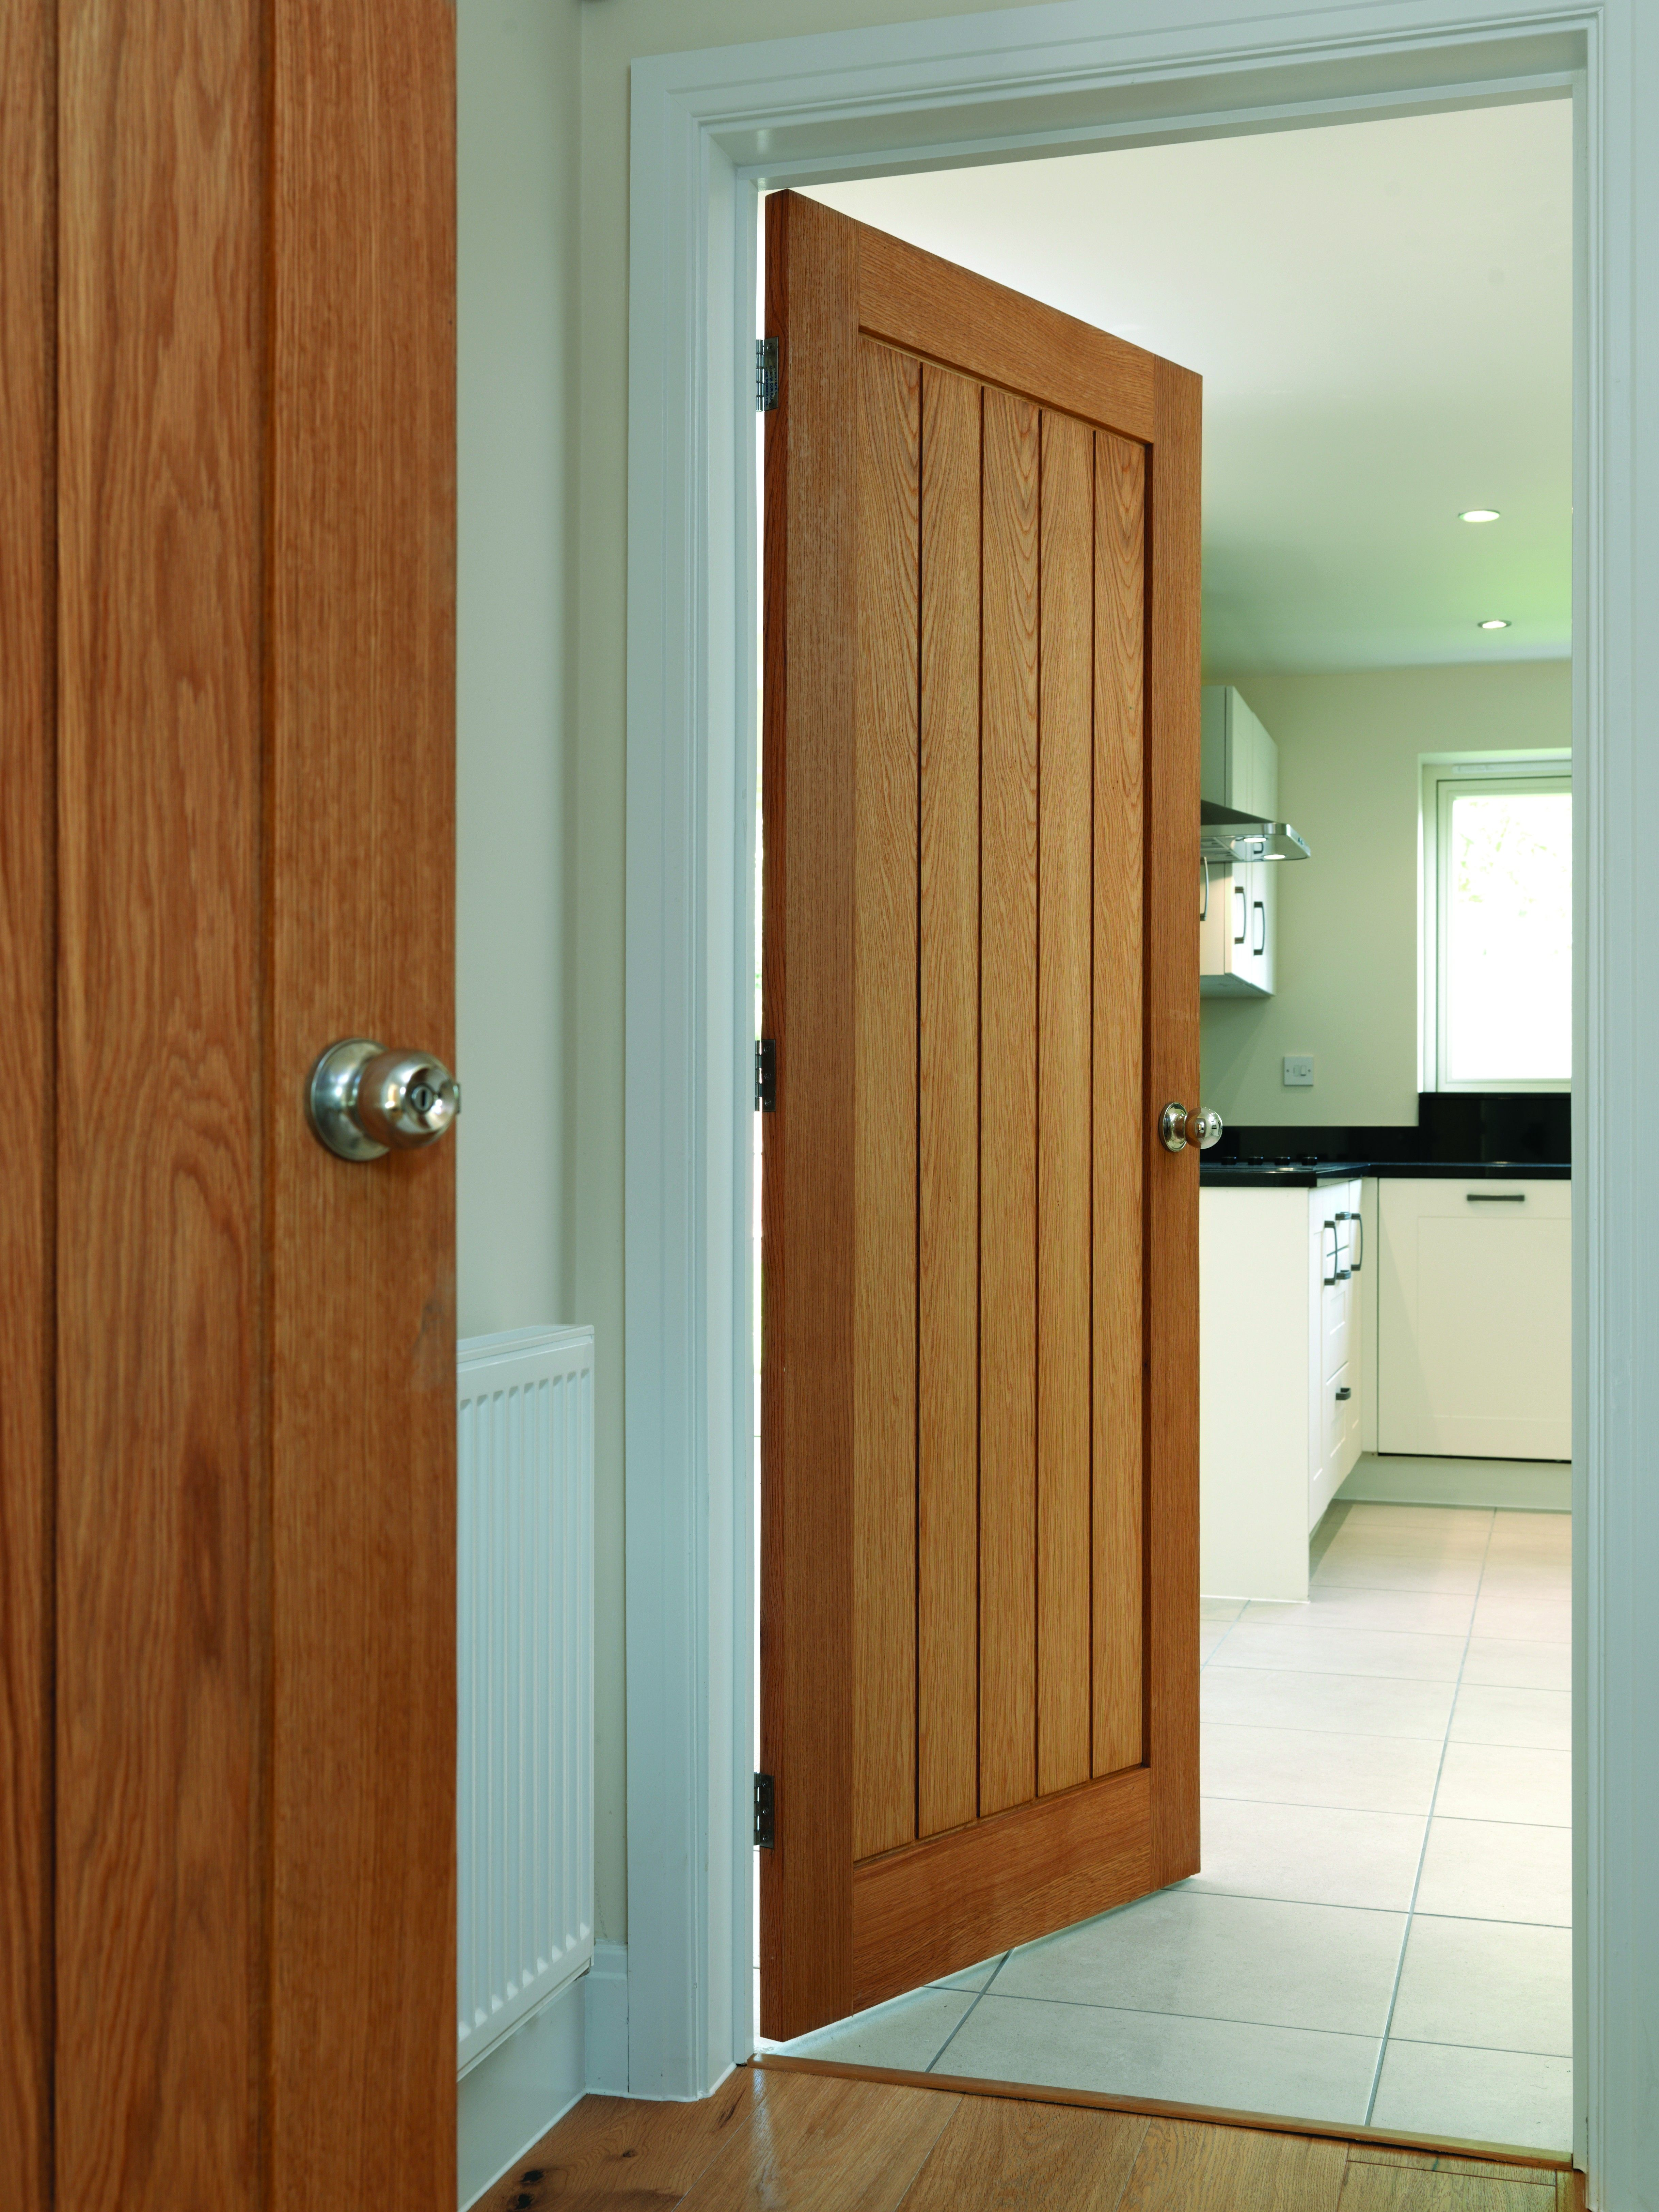 Ie closet doors and sometimes on an exterior door in conjunction with - Oak Internal Interior Door Looking Good In A Modern House